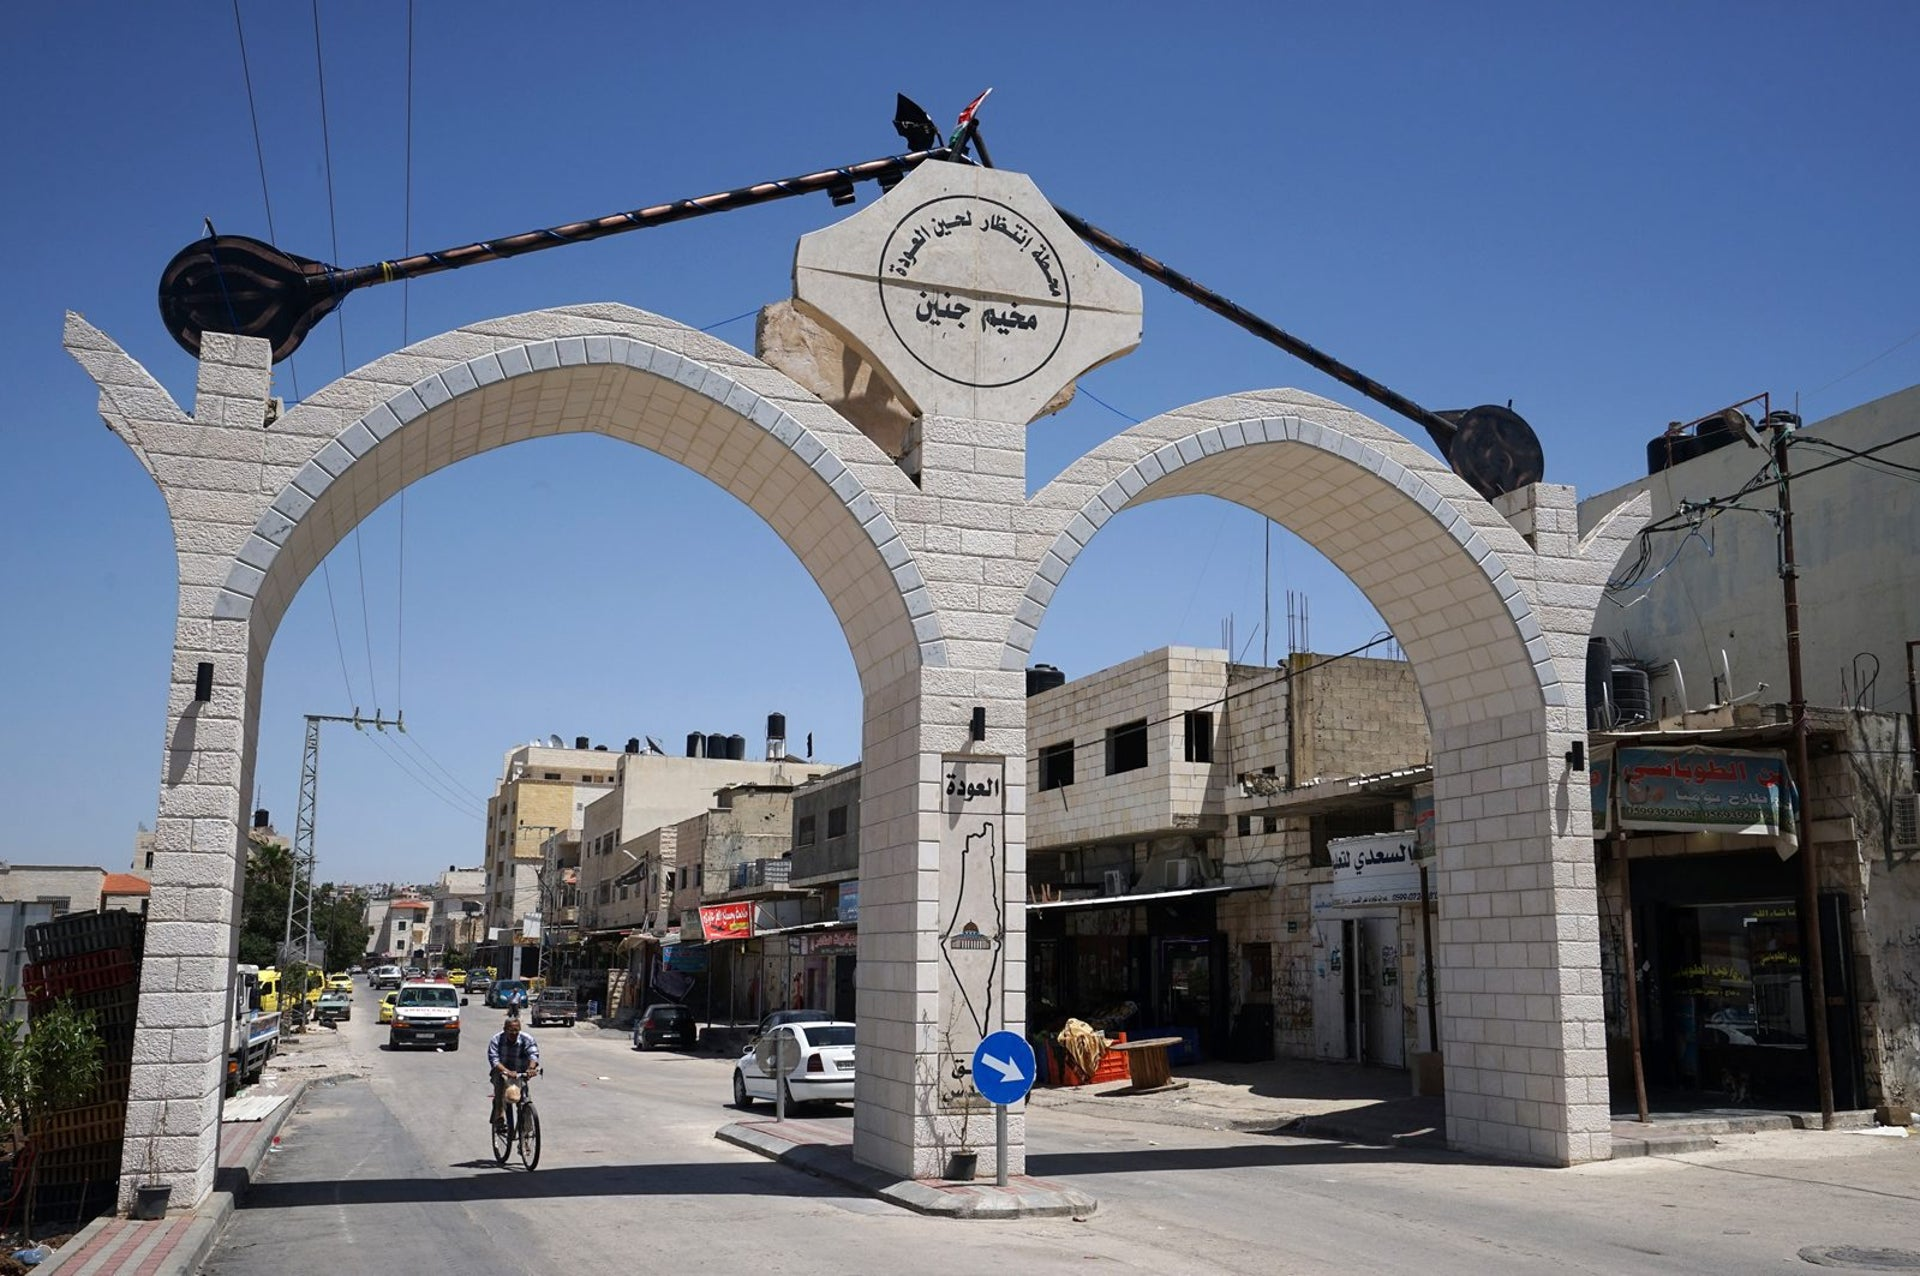 The Jenin refugee camp's entrance gateway carries the inscription 'Waiting station for the return.'